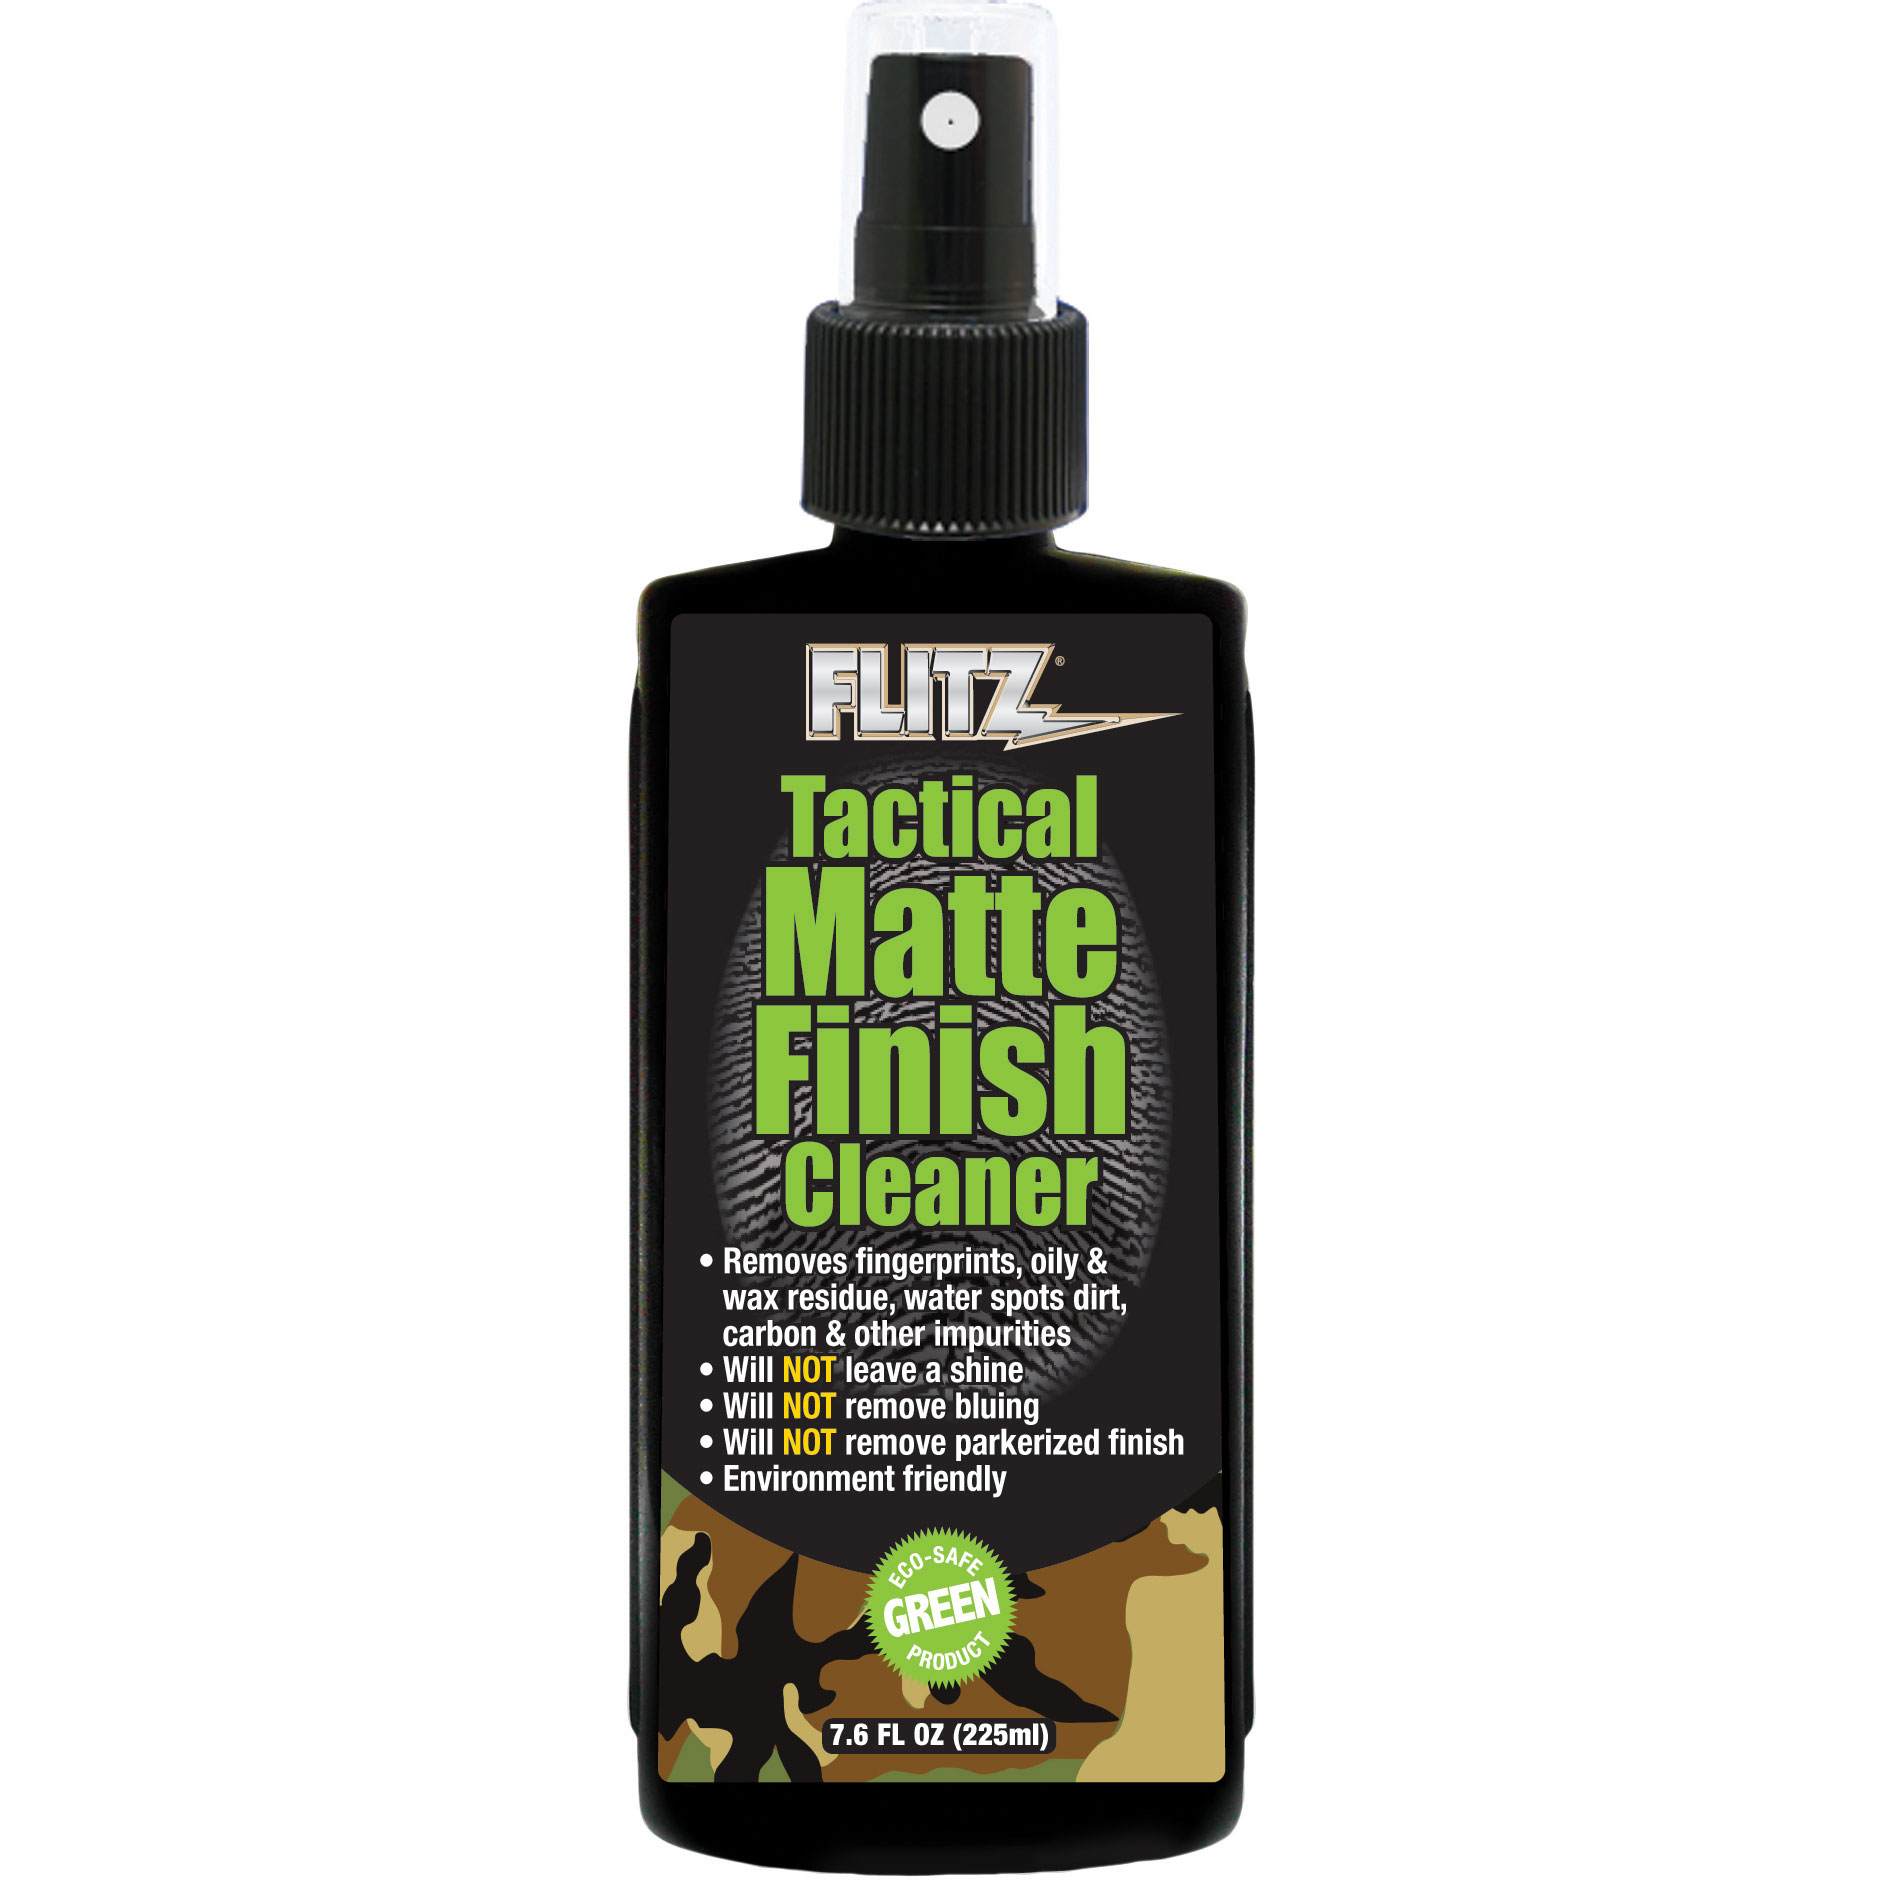 Flitz TM 81585 Tactical Matte Finish Cleaner 7.6 fl oz. (225ml)